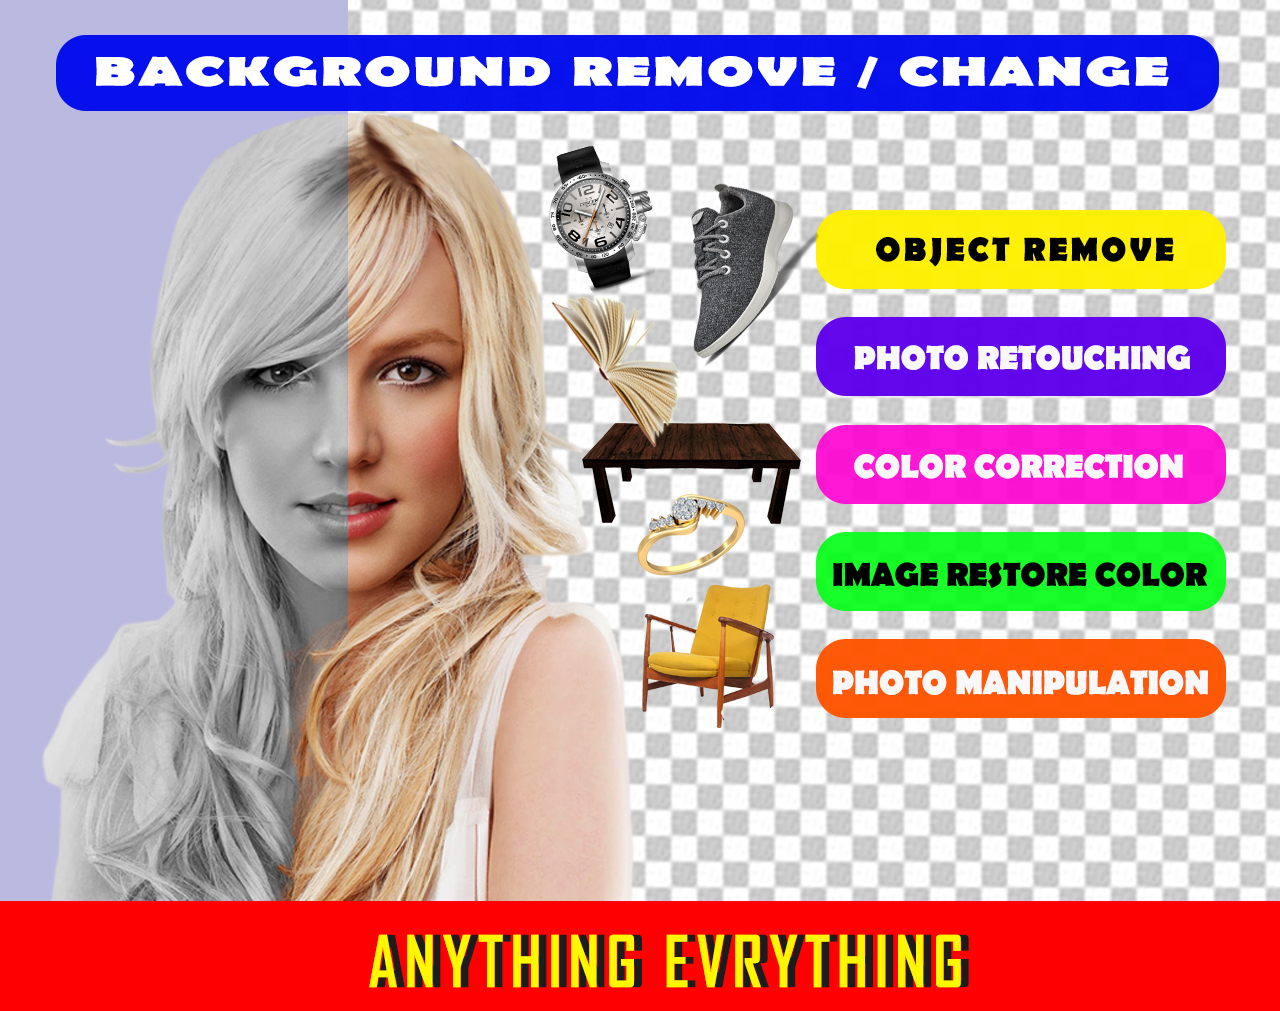 10 Images Background Remove and Retouch just 5 Hours